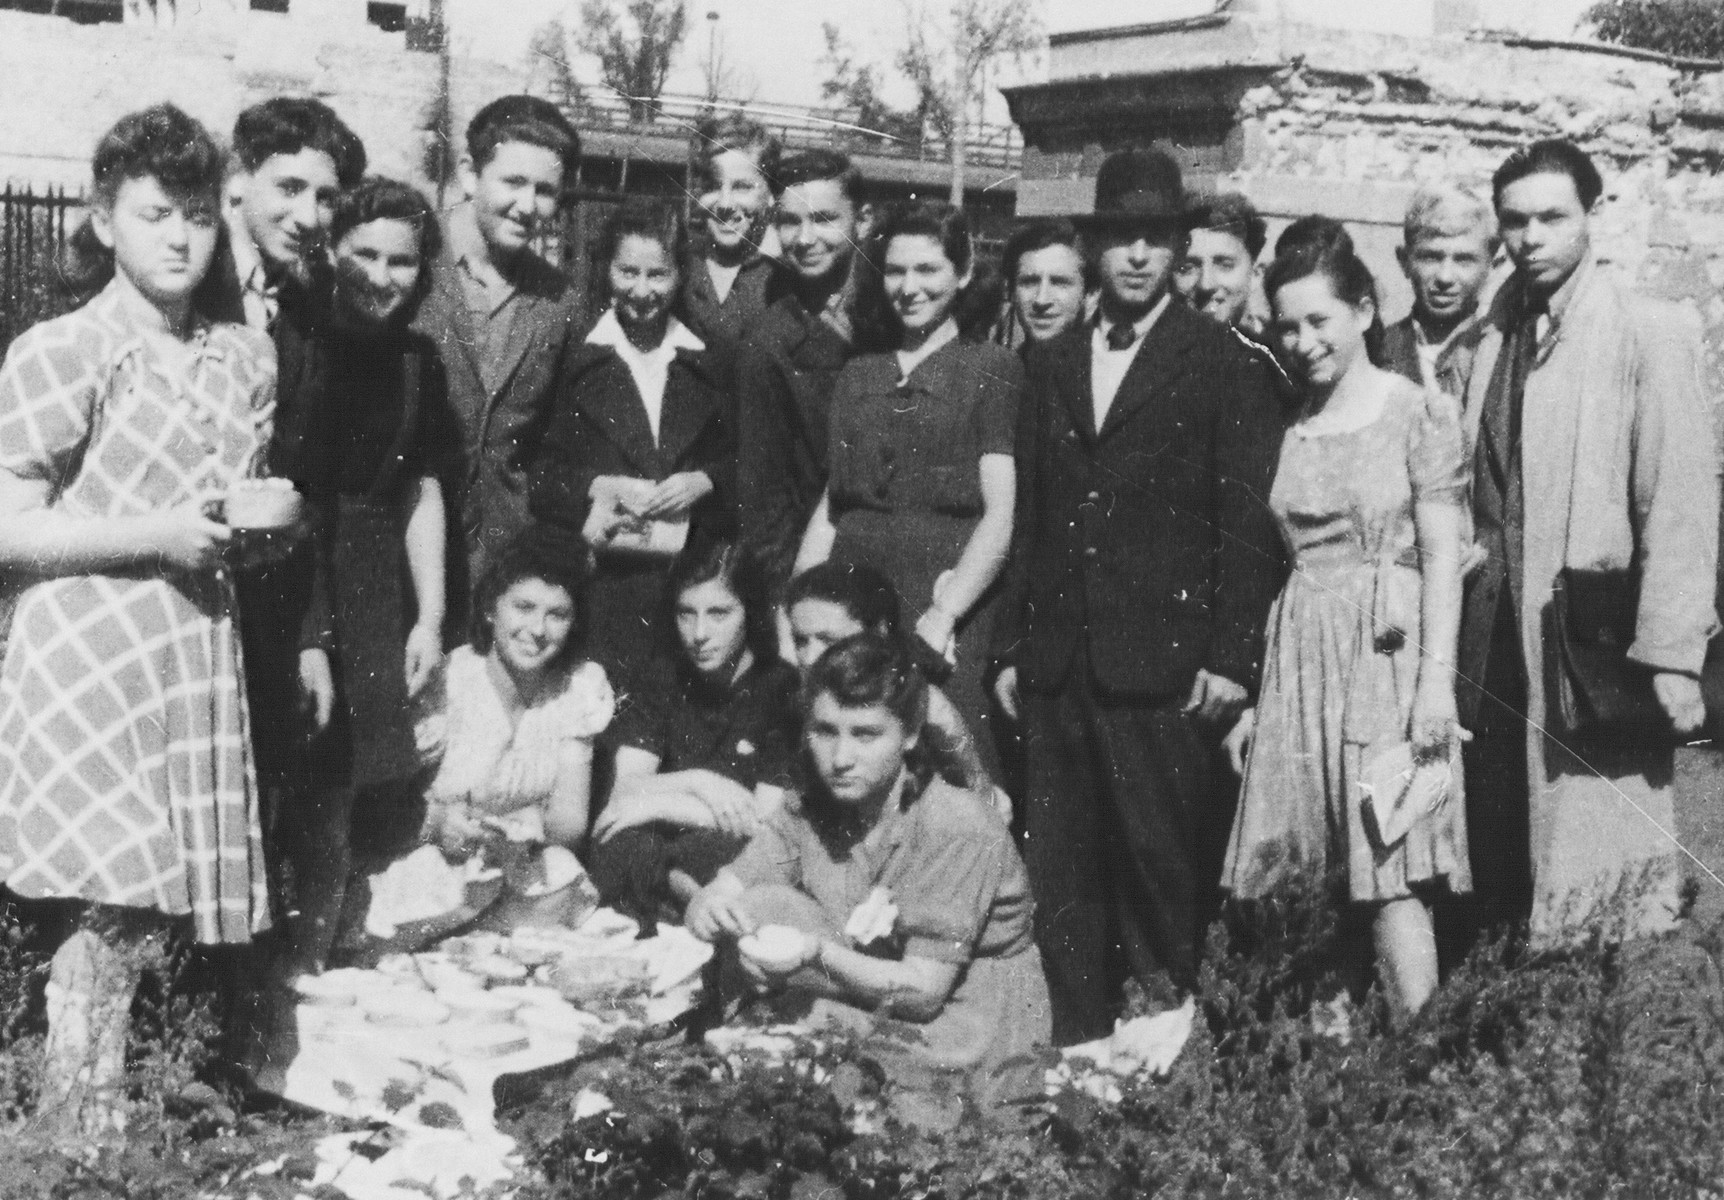 Group portrait of Jewish DP youth at a picnic in the Schlachtensee displaced persons camp.    Among those pictured is Regina Laks (squatting on the left) and the English teacher (far right).